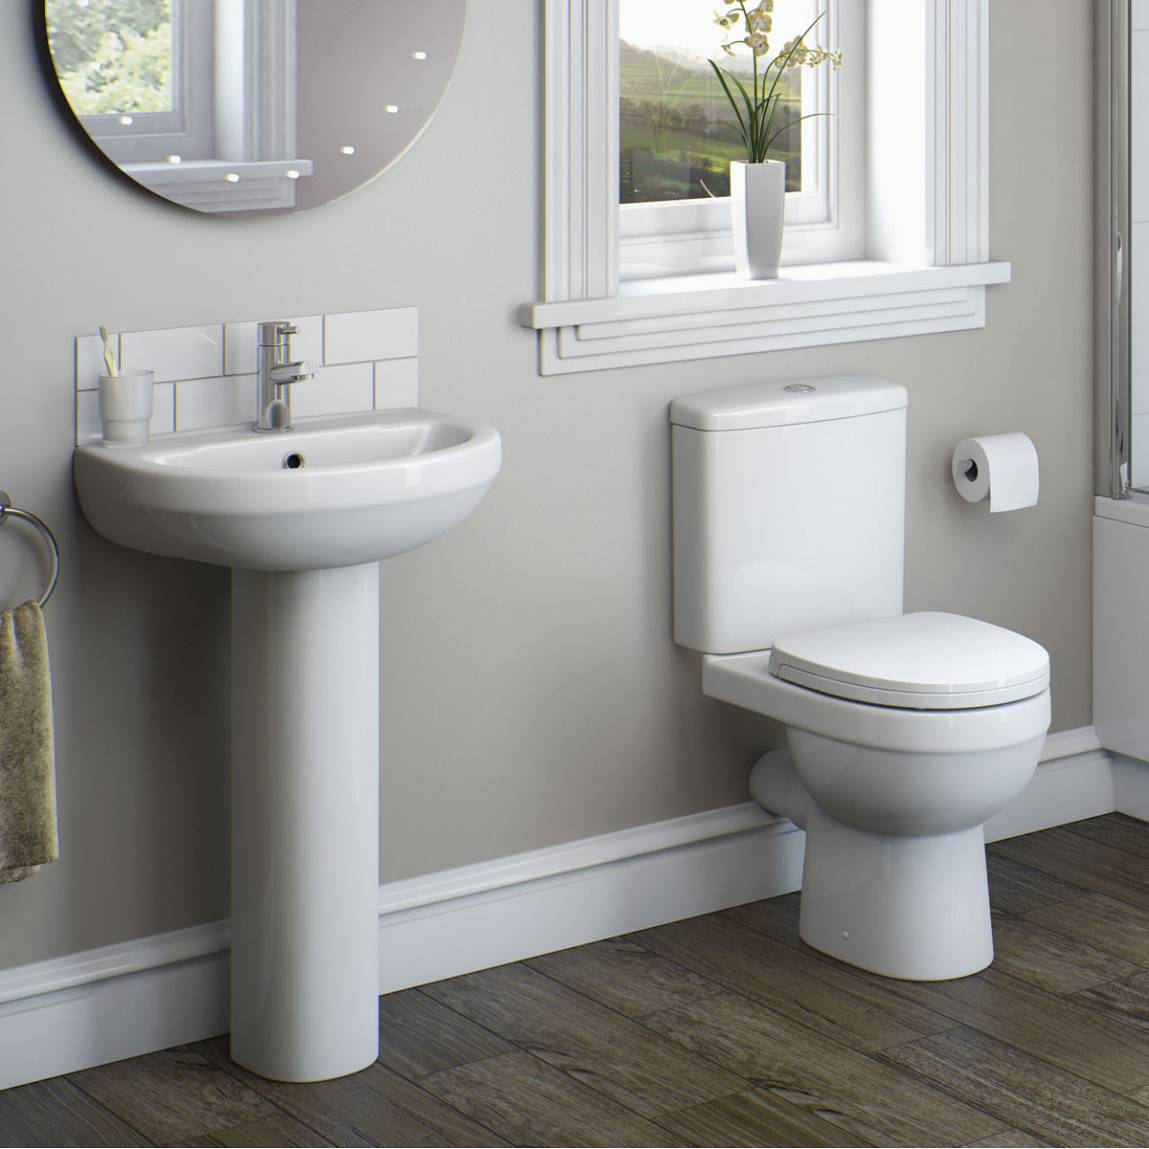 Bathroom products for small spaces for Space saving bathroom designs